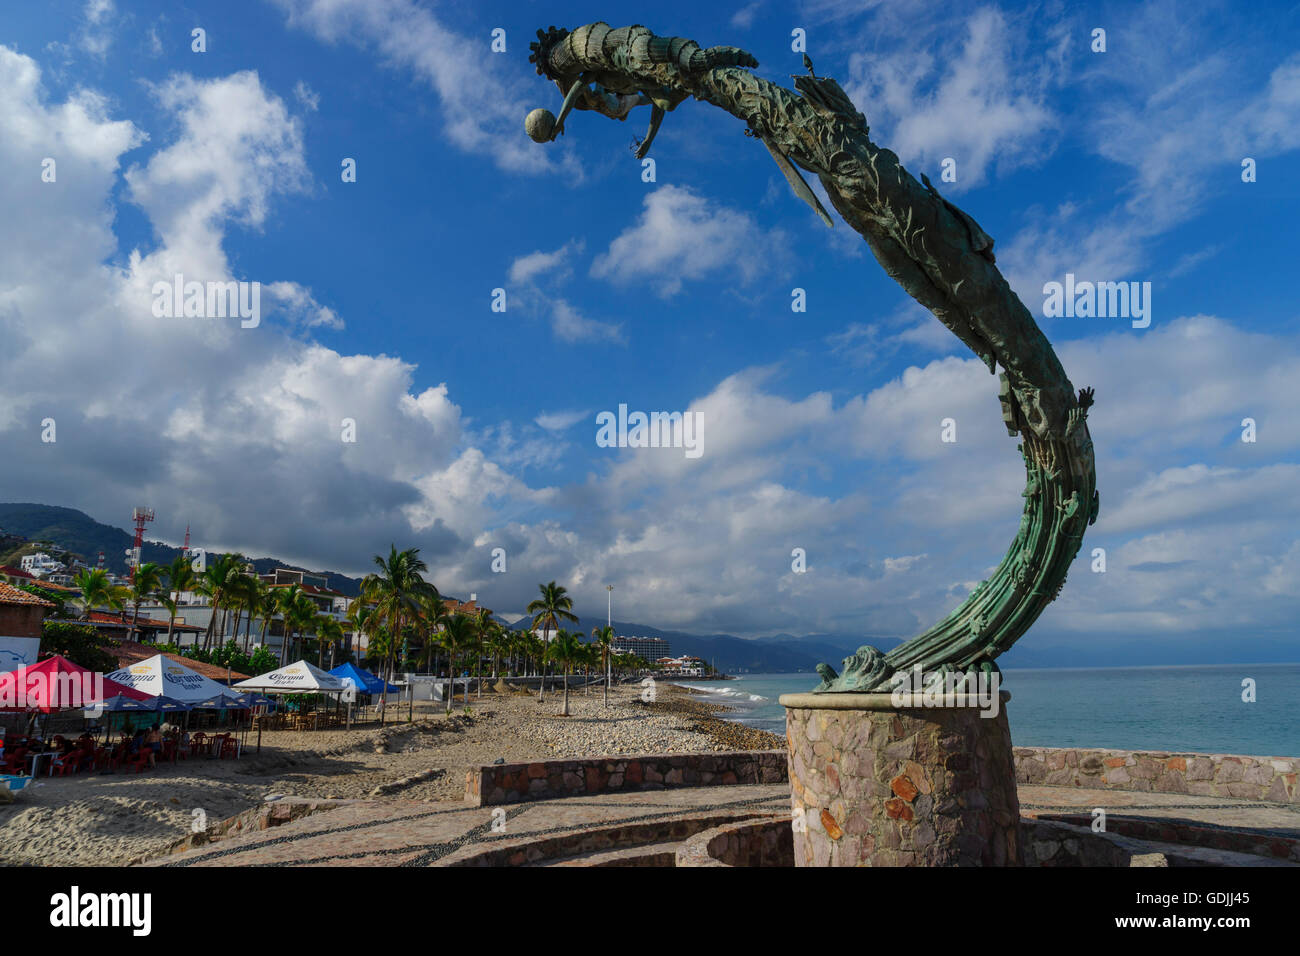 The Millennia by Mathis Lidice situated just past the north end of the PV malecon Puerto Vallarta Mexcio Stock Photo